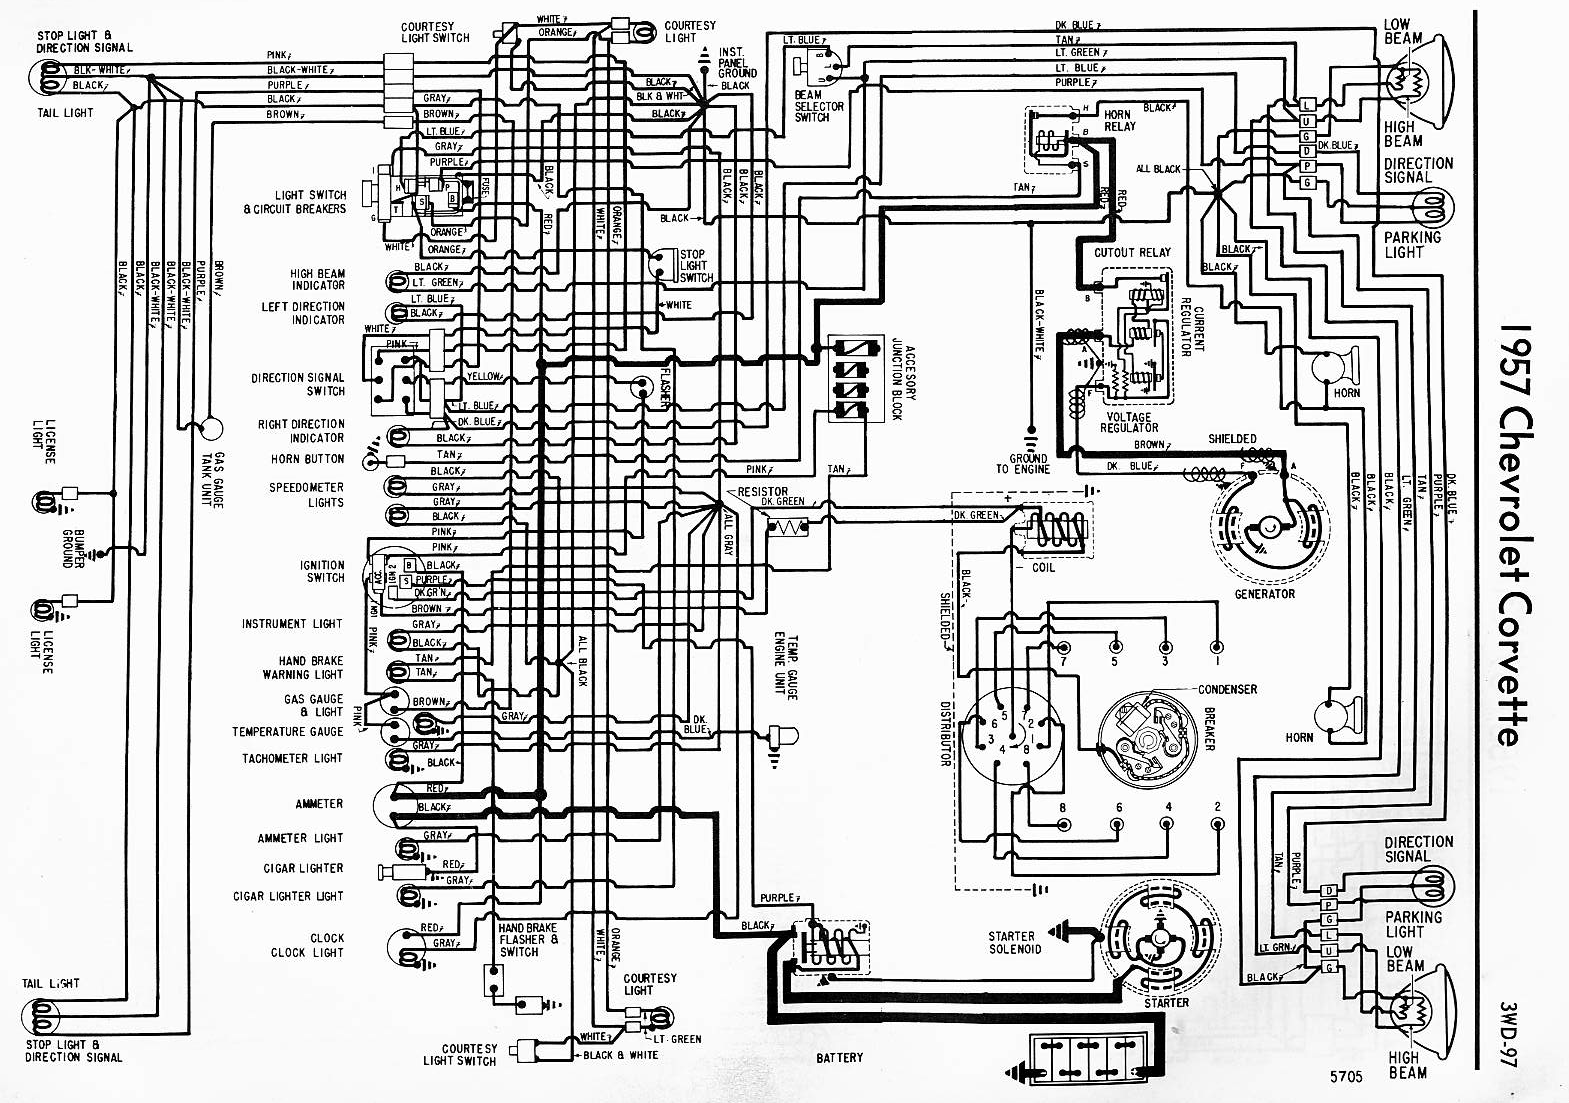 1956 starter motor and selinoid wire diagram corvetteforum chevy wiring diagrams